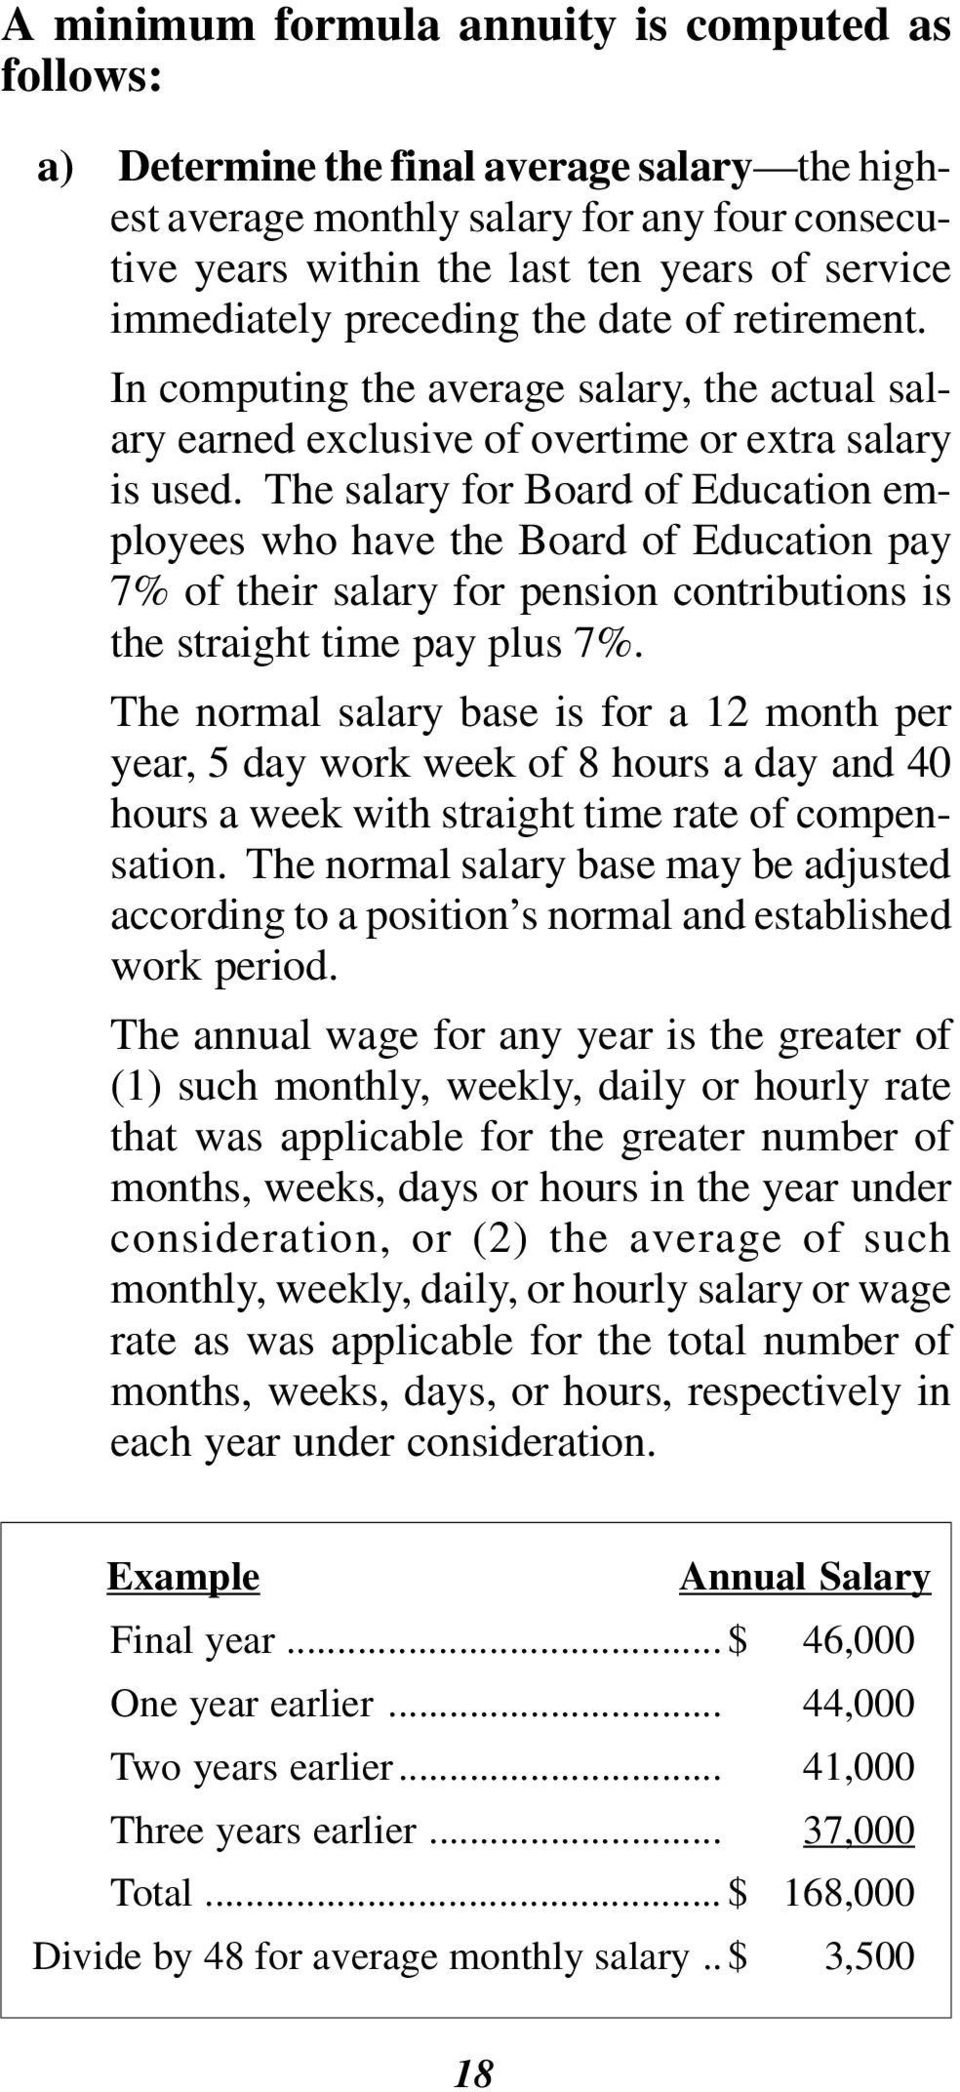 The salary for Board of Education employees who have the Board of Education pay 7% of their salary for pension contributions is the straight time pay plus 7%.